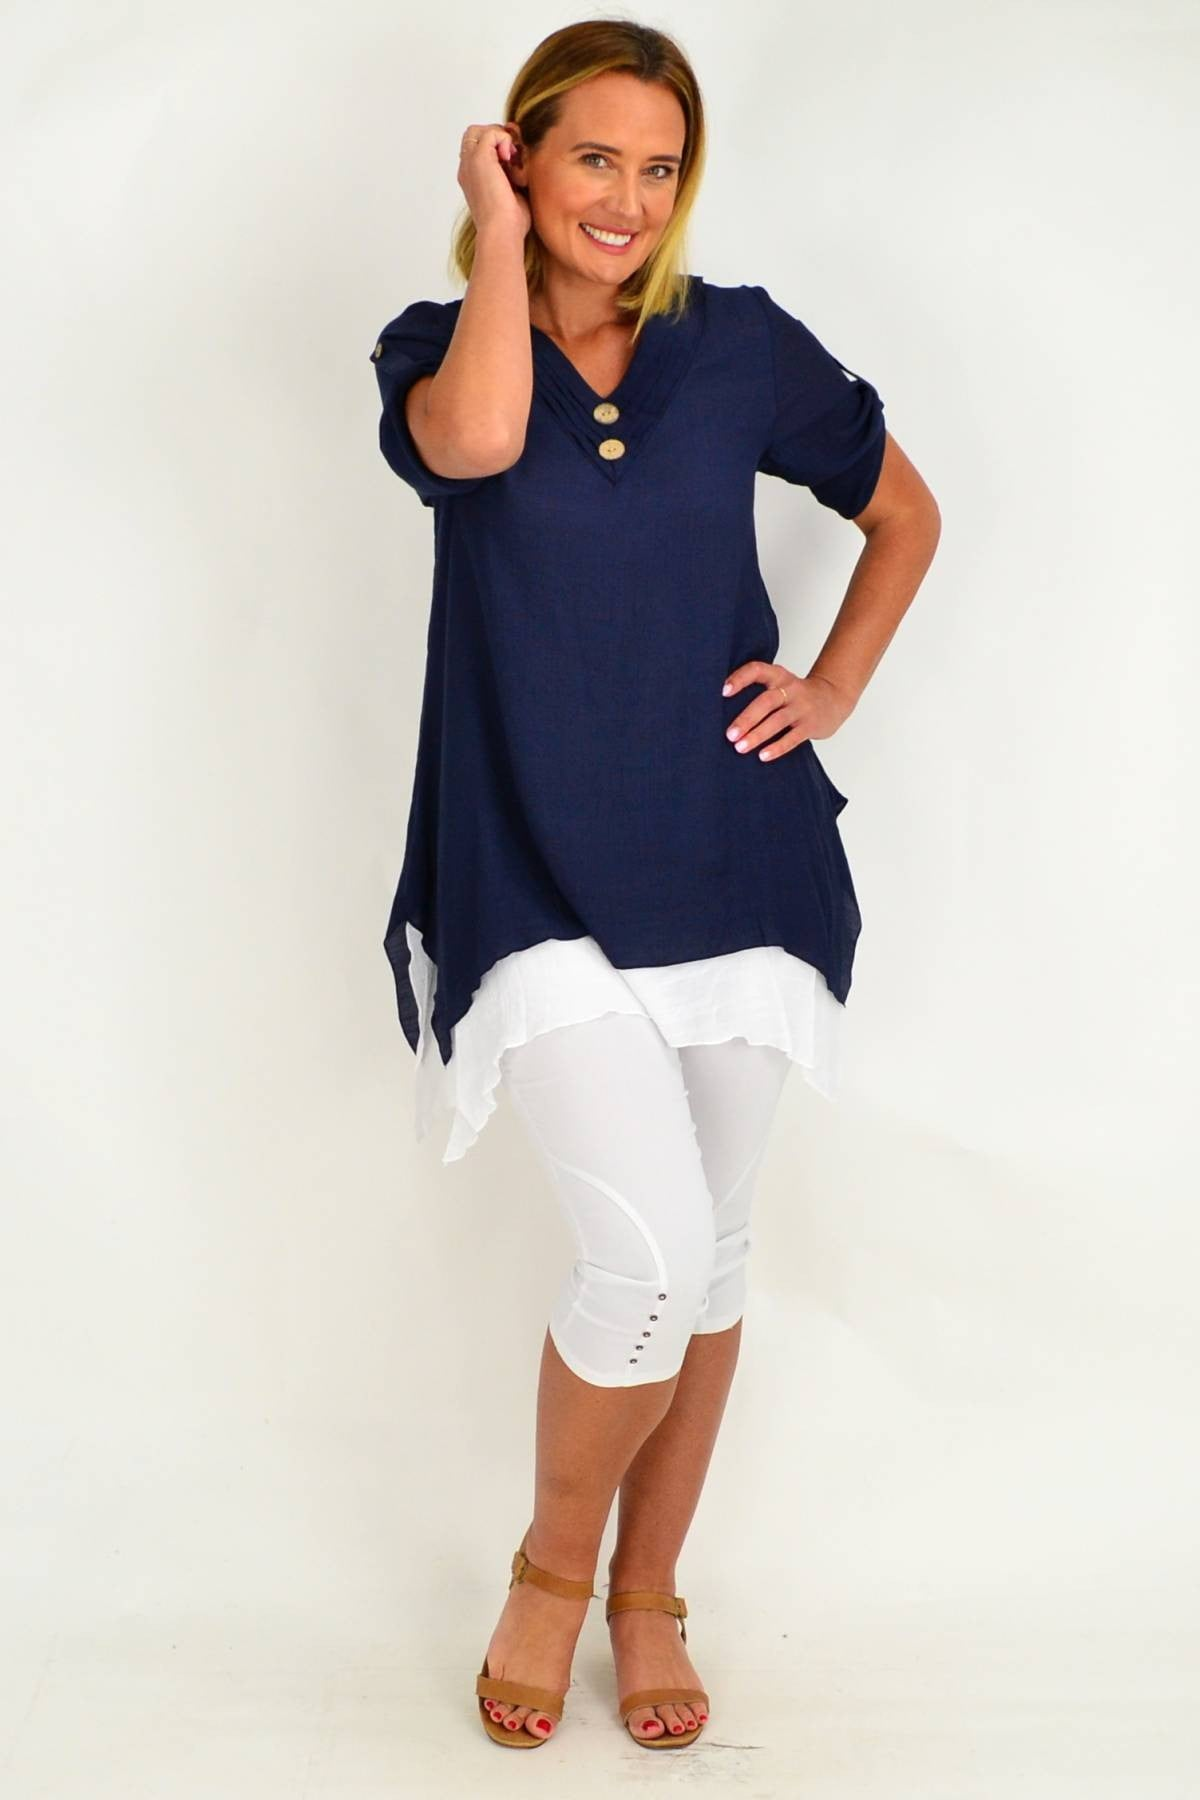 Dark Blue Short Sleeve Overlay Tunic Top | I Love Tunics | Tunic Tops | Tunic | Tunic Dresses  | womens clothing online